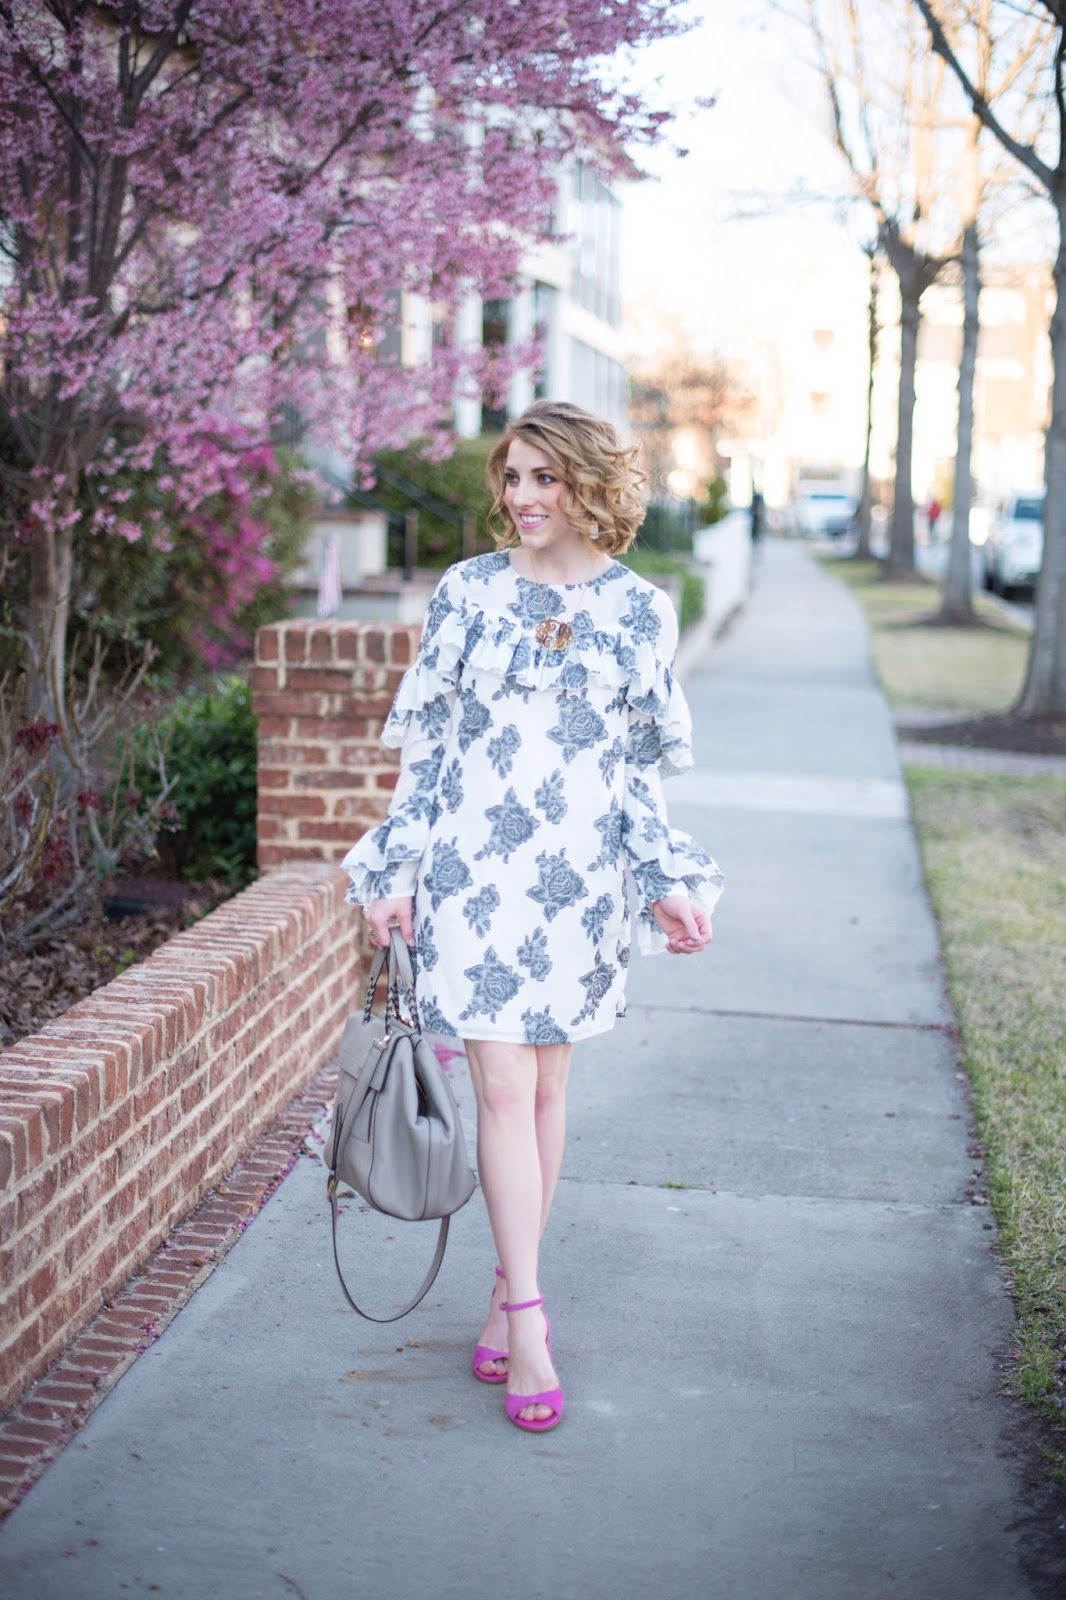 Ruffle Dress - Something Delightful Blog